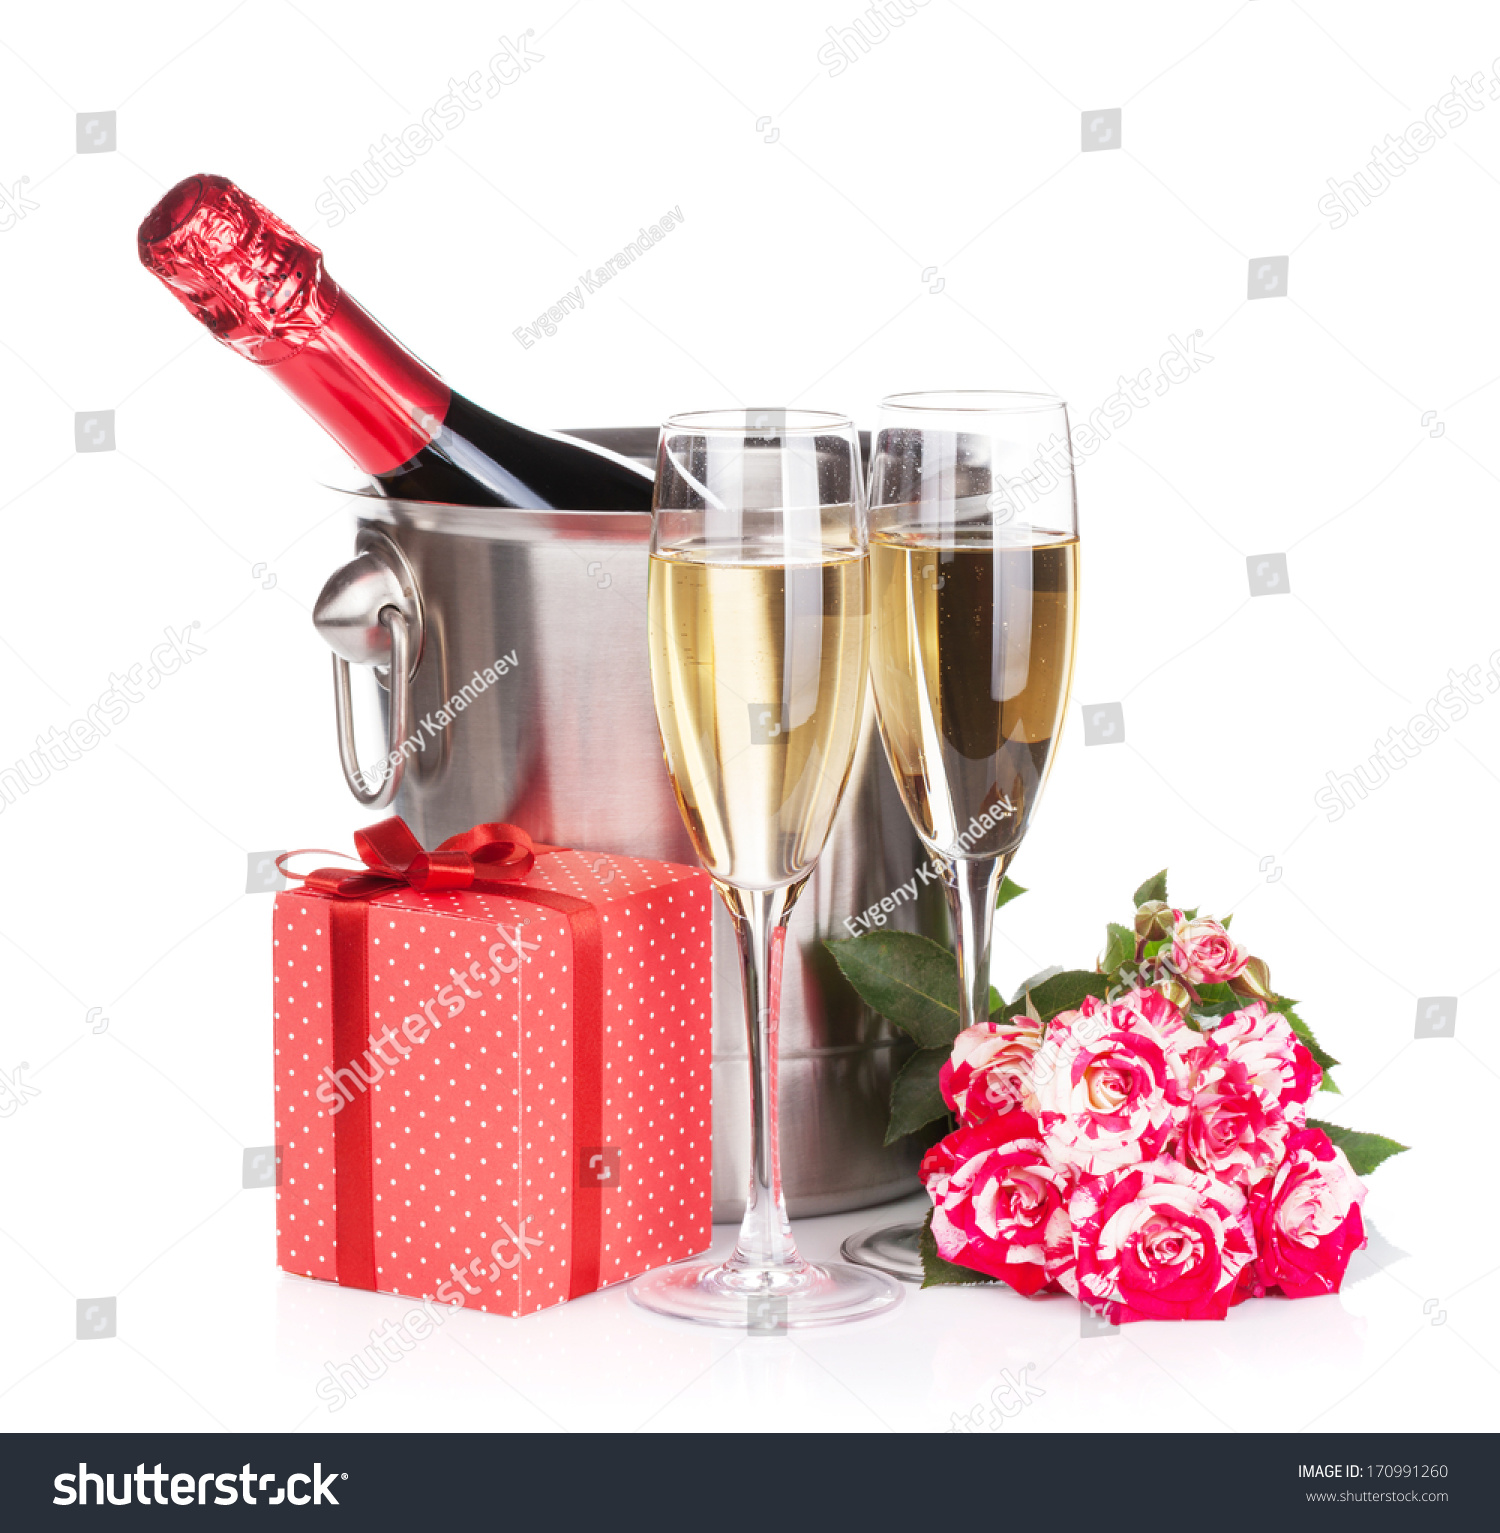 Champagne Bottle Two Glasses Gift Box And Red Rose Flowers